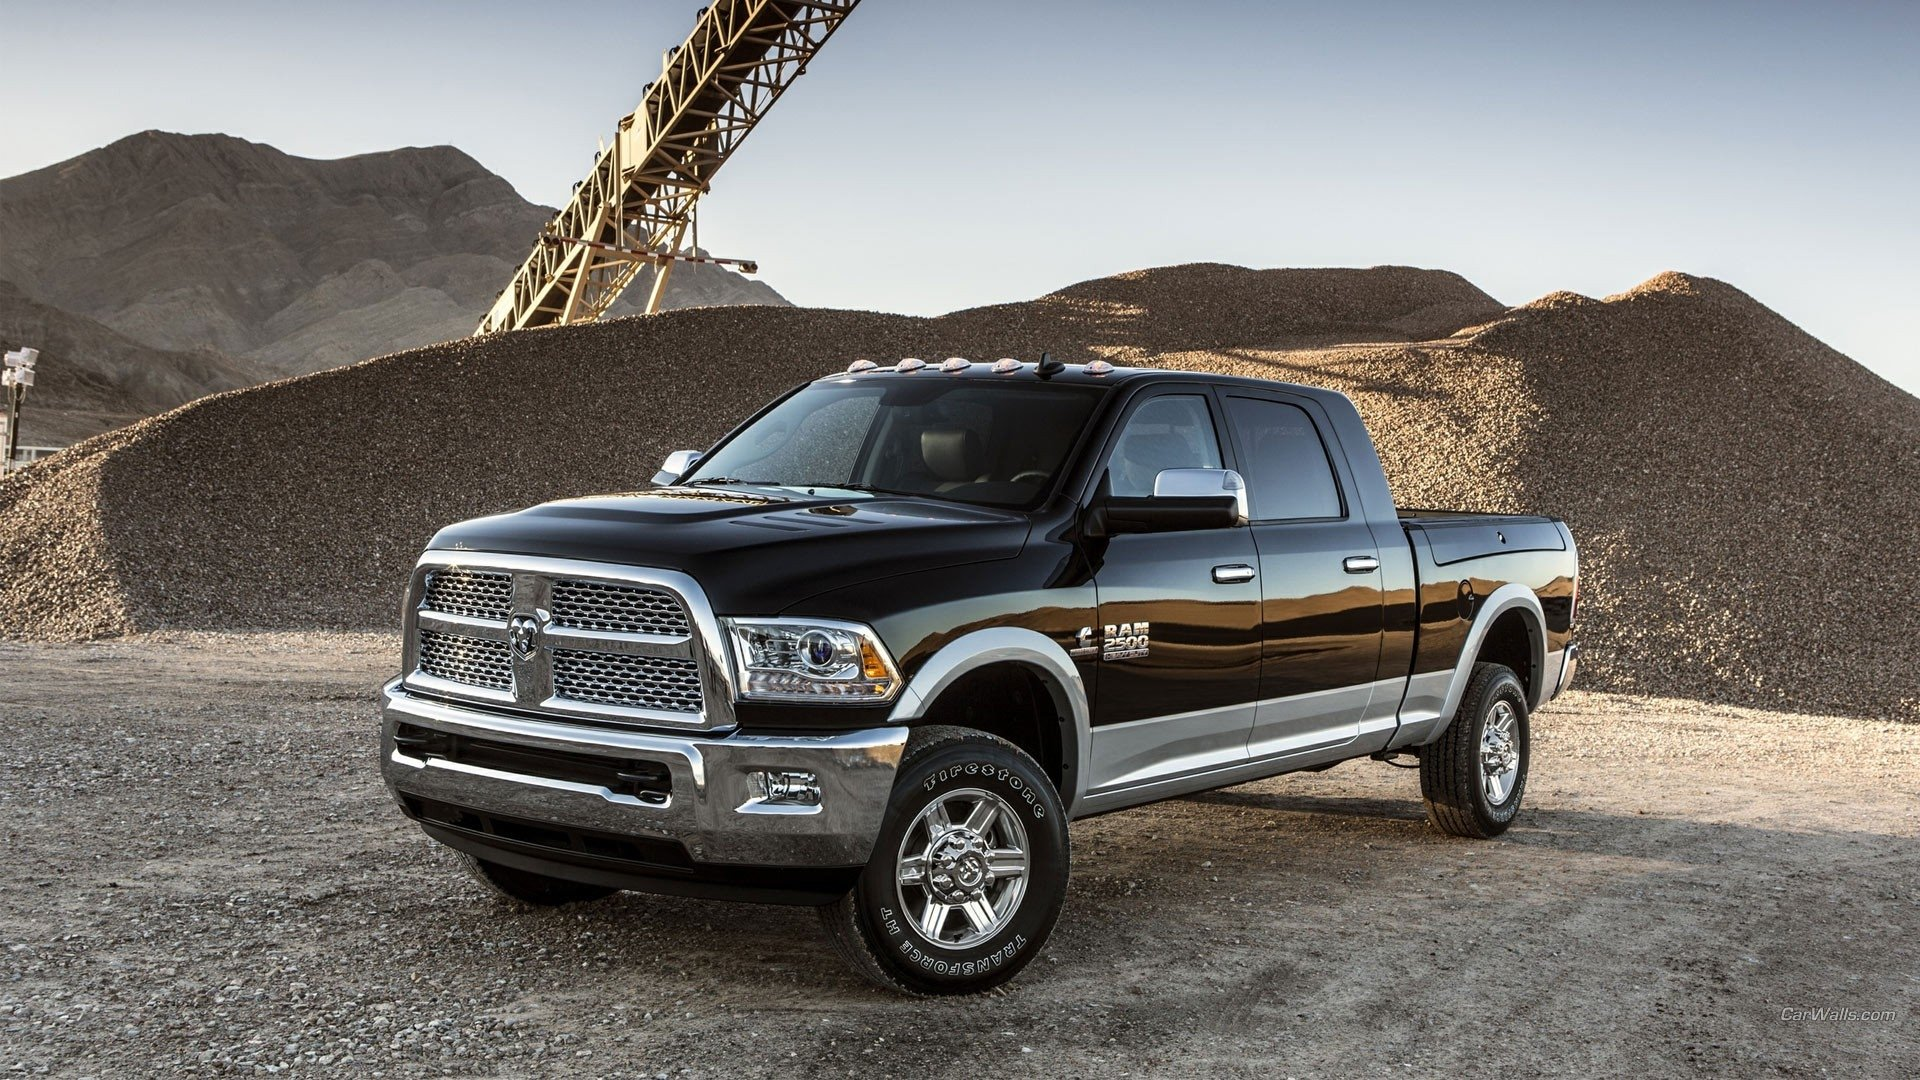 4 Dodge Ram 2500 HD Wallpapers  Backgrounds  Wallpaper Abyss